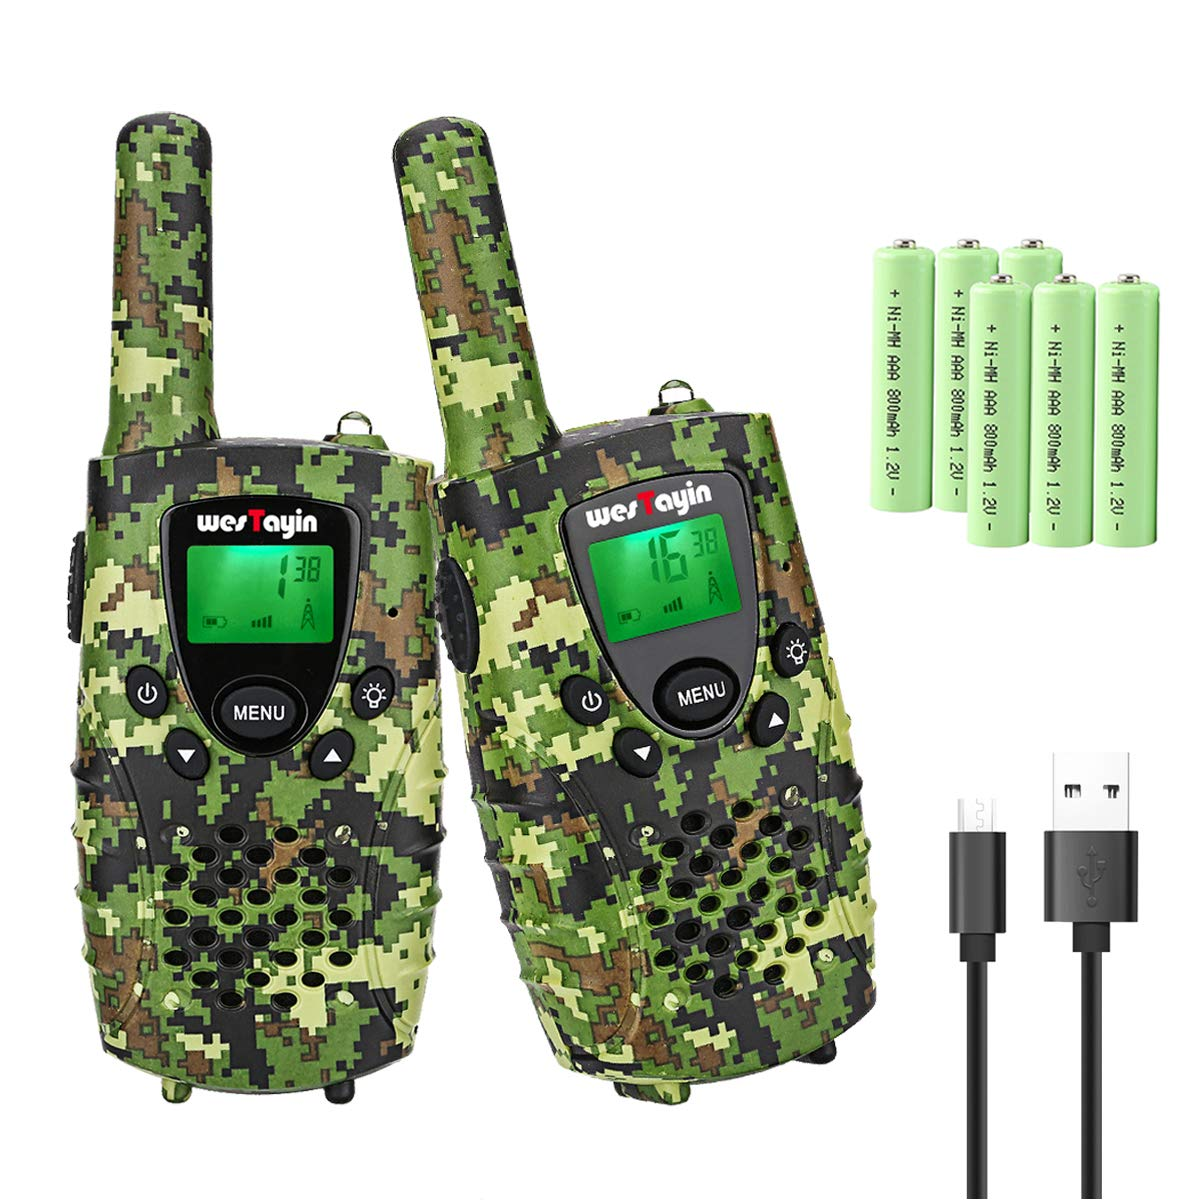 WES TAYIN Rechargeable Walkie Talkies for Kids, 4 Miles Kids Walkie Talkies with VOX Hands Free and LED Flashlight, Power Saving Two Way Radios Toys, Holiday Birthday for Kids